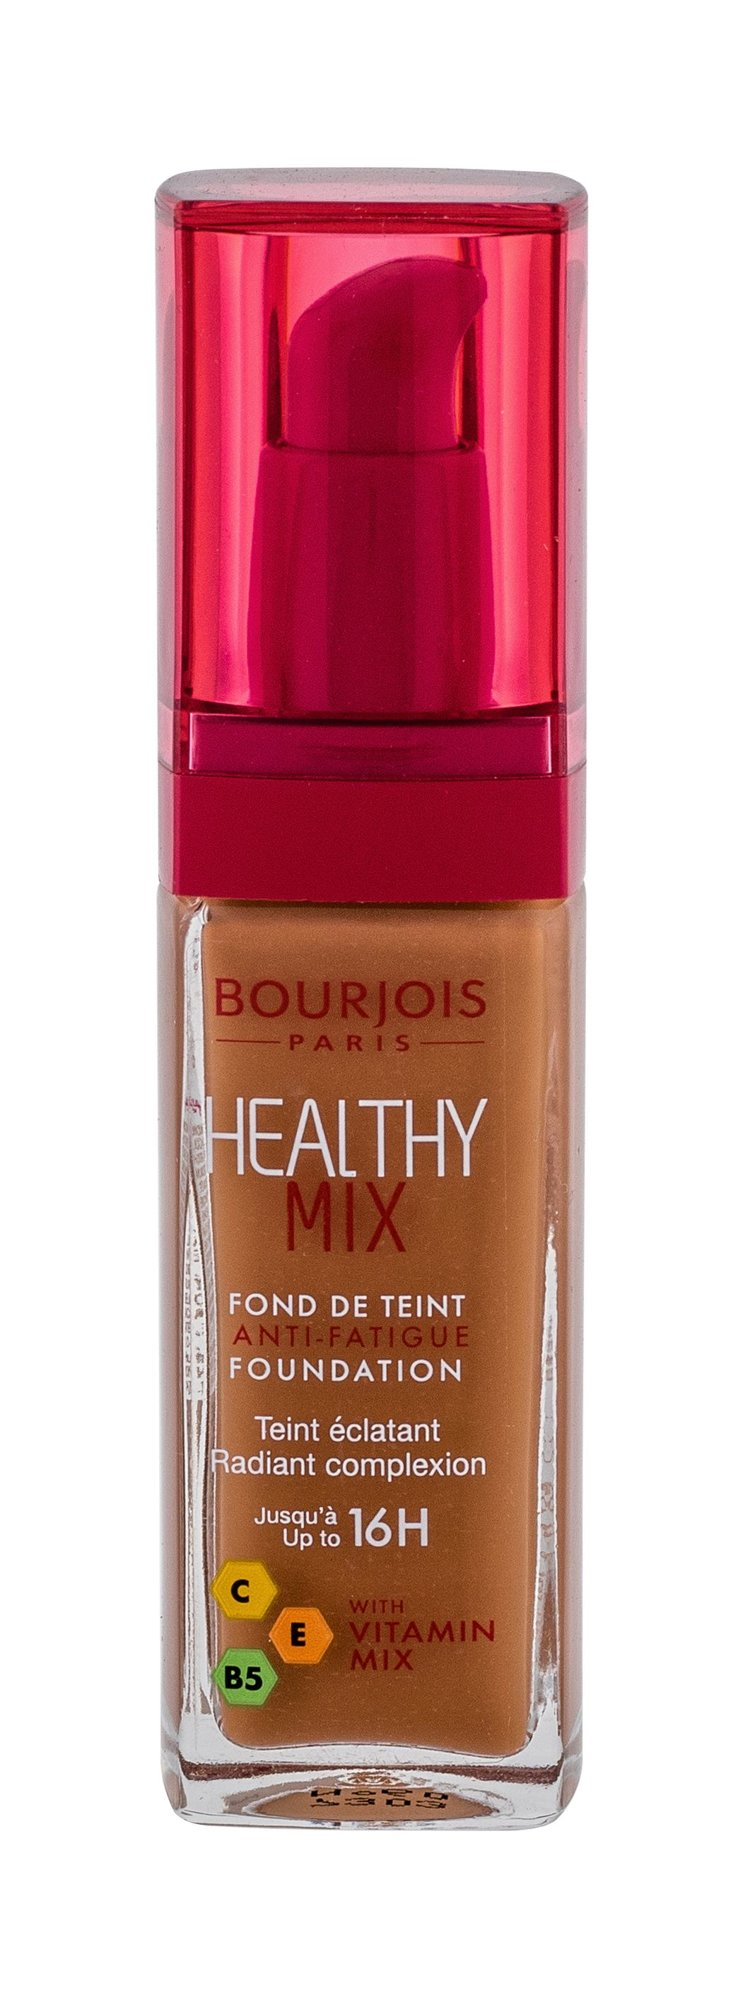 BOURJOIS Paris Healthy Mix Makeup 30ml 60 Dark Amber